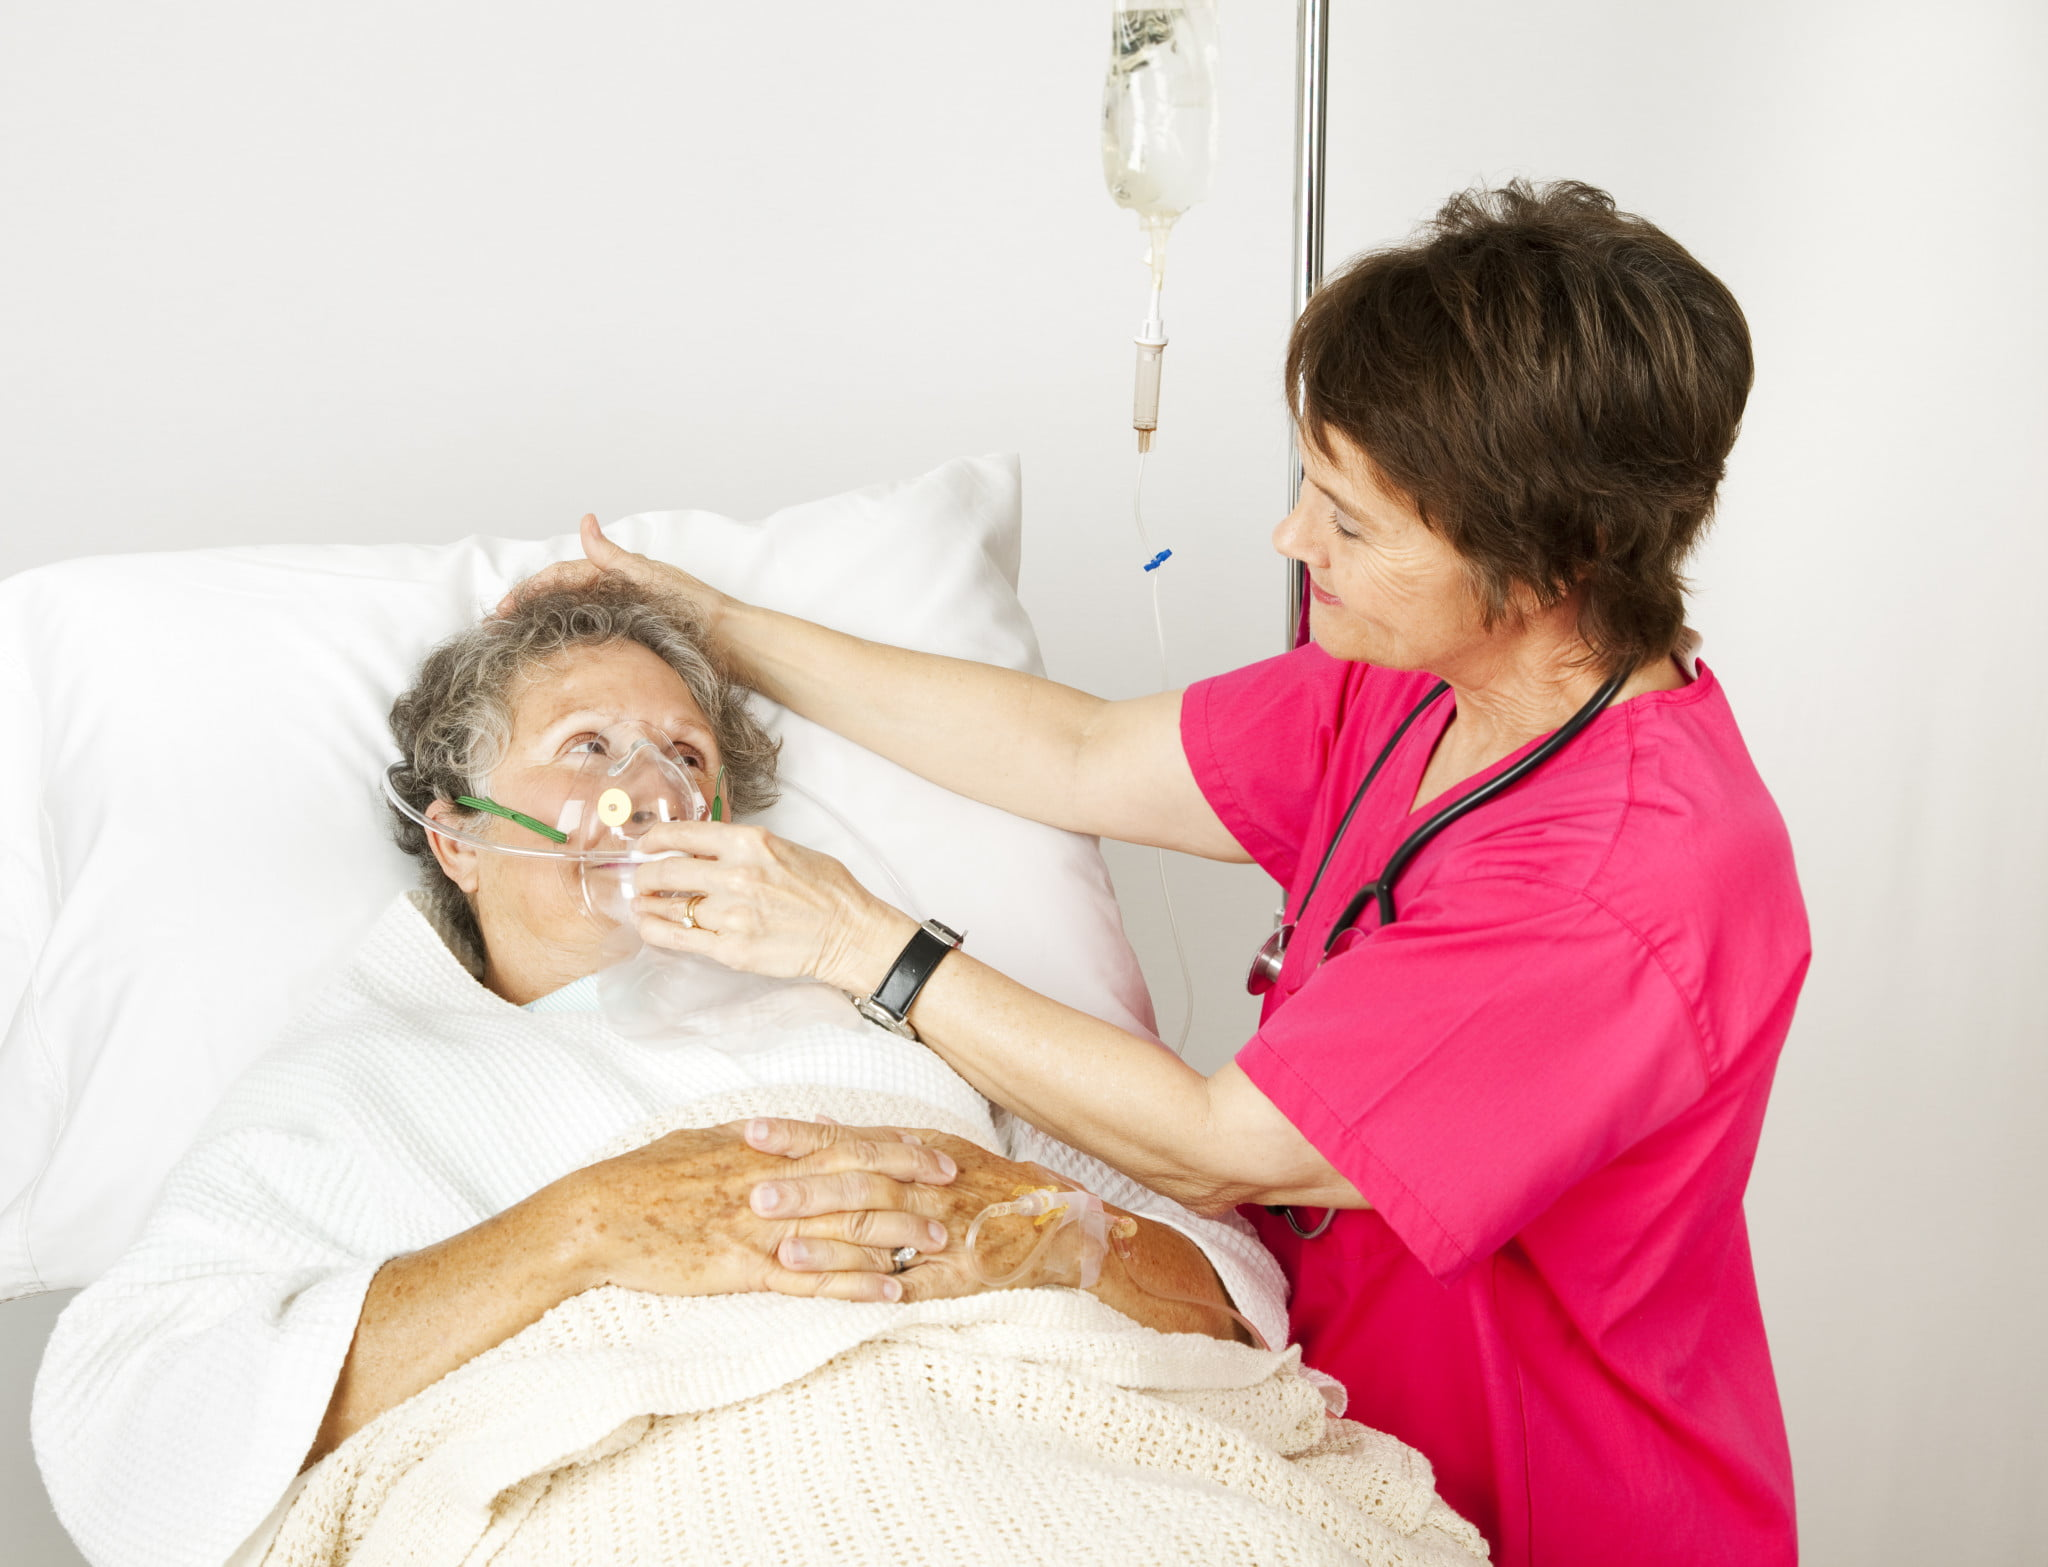 woman with asthma in hospital bed with nurse